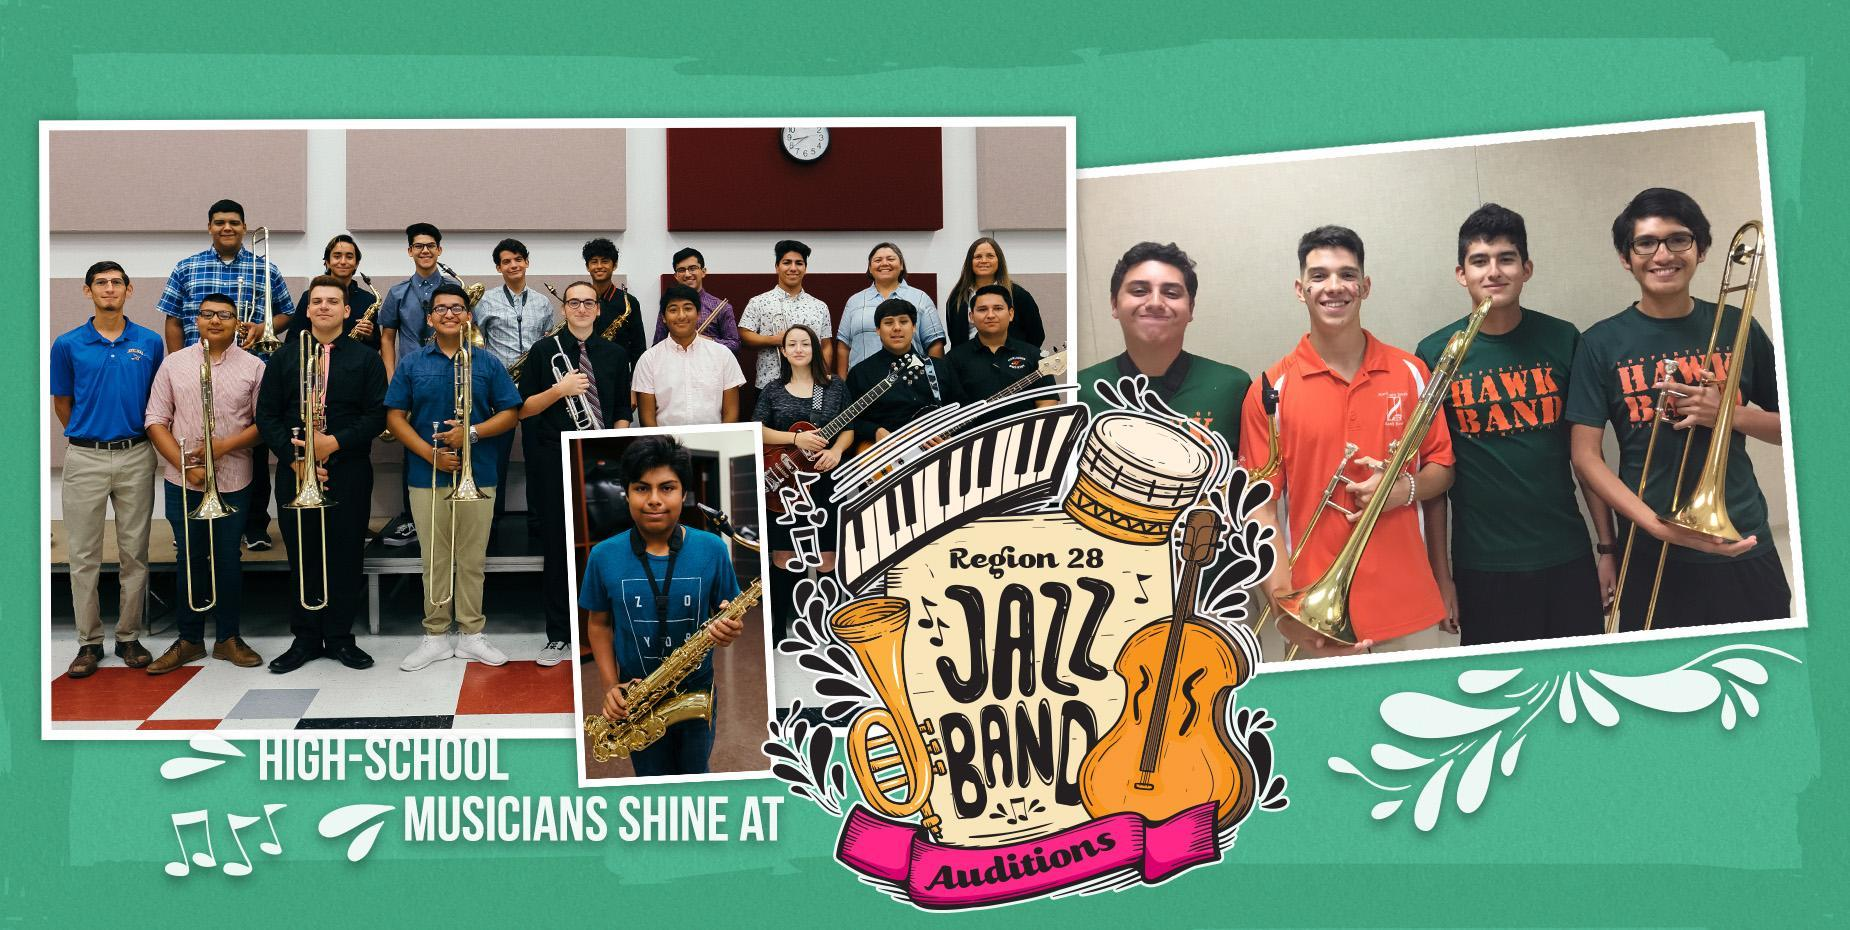 High-school musicians shine at Region 28 Jazz Band auditions